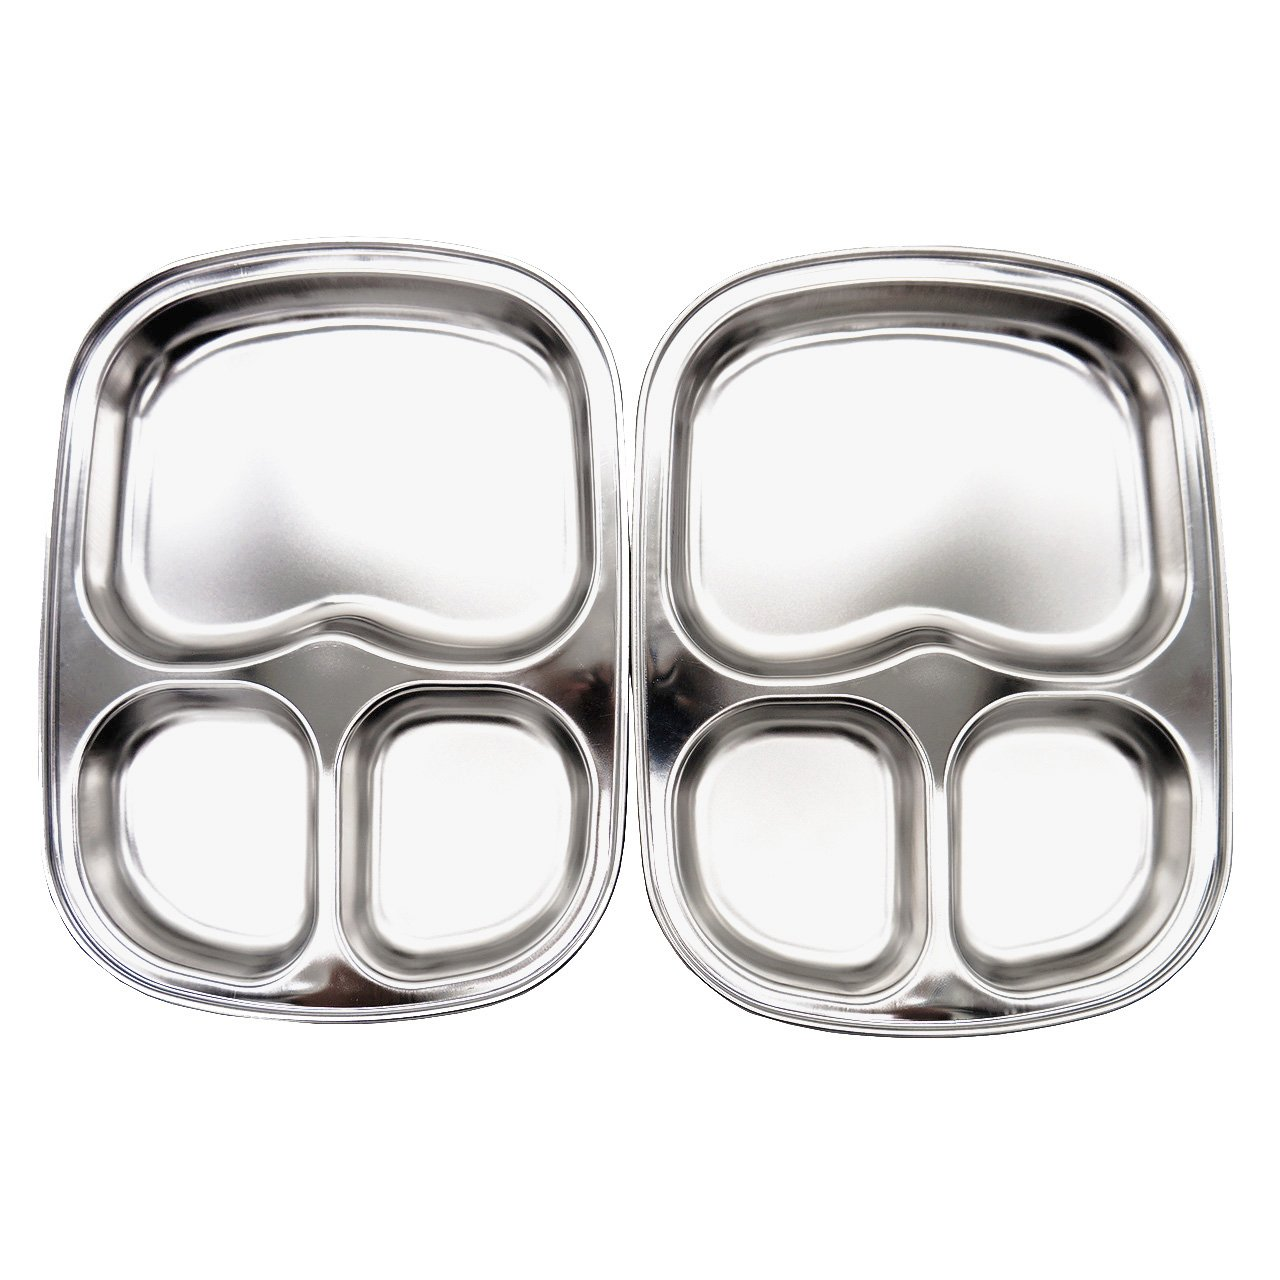 Stainless Steel Divided Plates by KS&E, Kids Toddlers Babies Tray, BPA Free, Diet Food Control, Camping Dishes, Compact Serving Platter, Dinner Snack, 3 Compartment Plate Silver, Set of 2